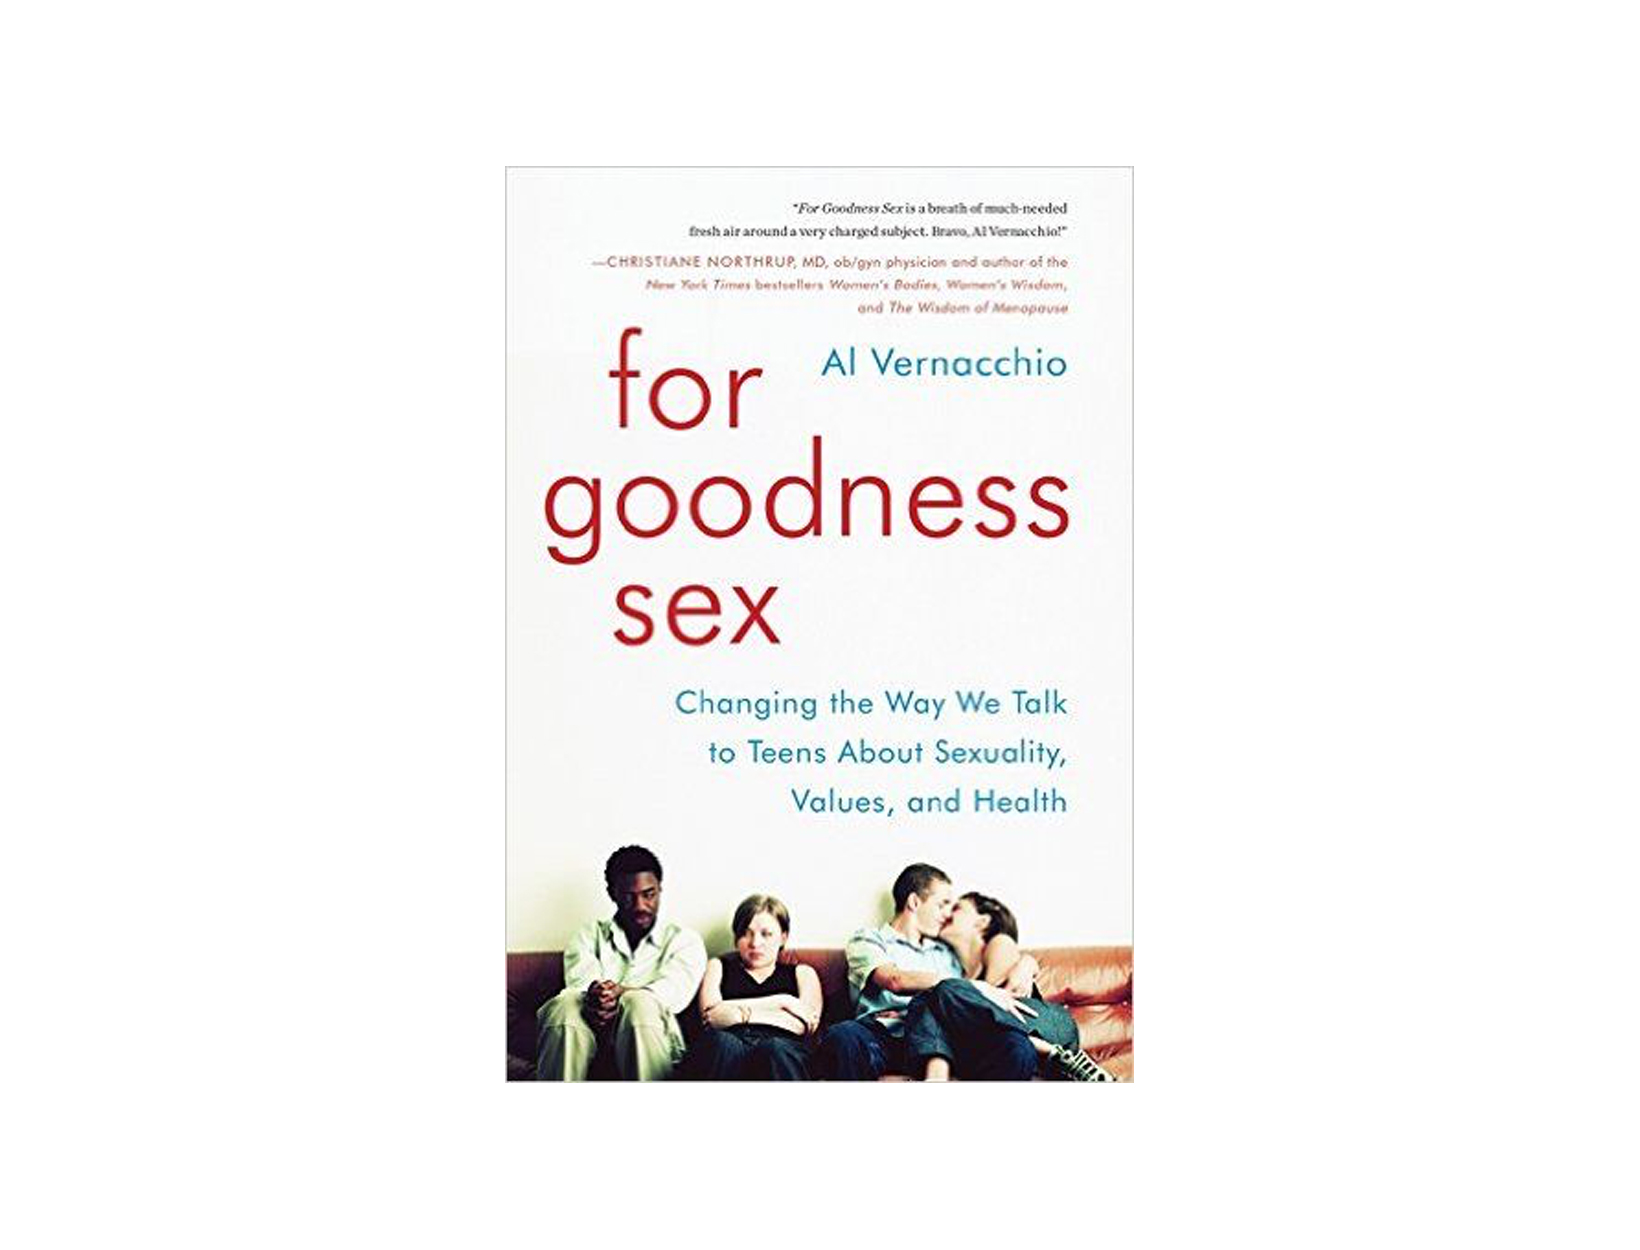 For Goodness Sex by Al Vernacchio